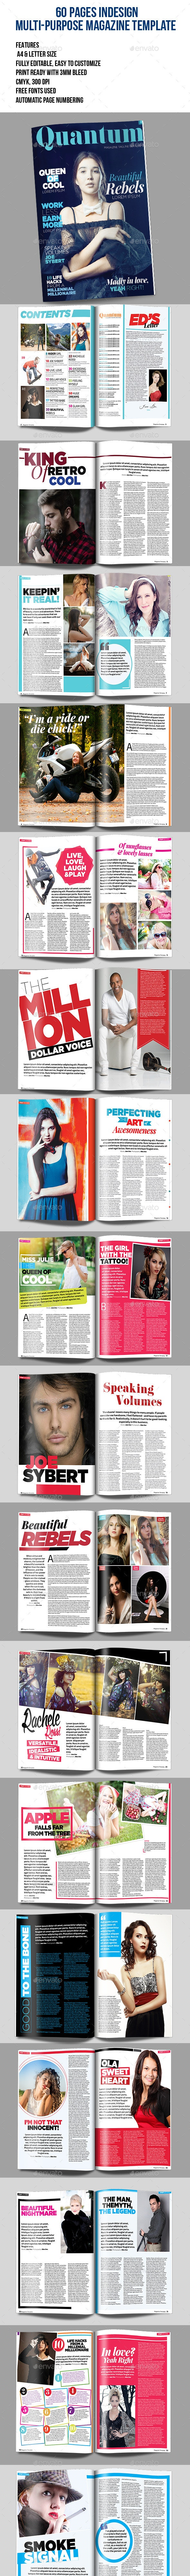 Indesign Magazine Template - Print Templates